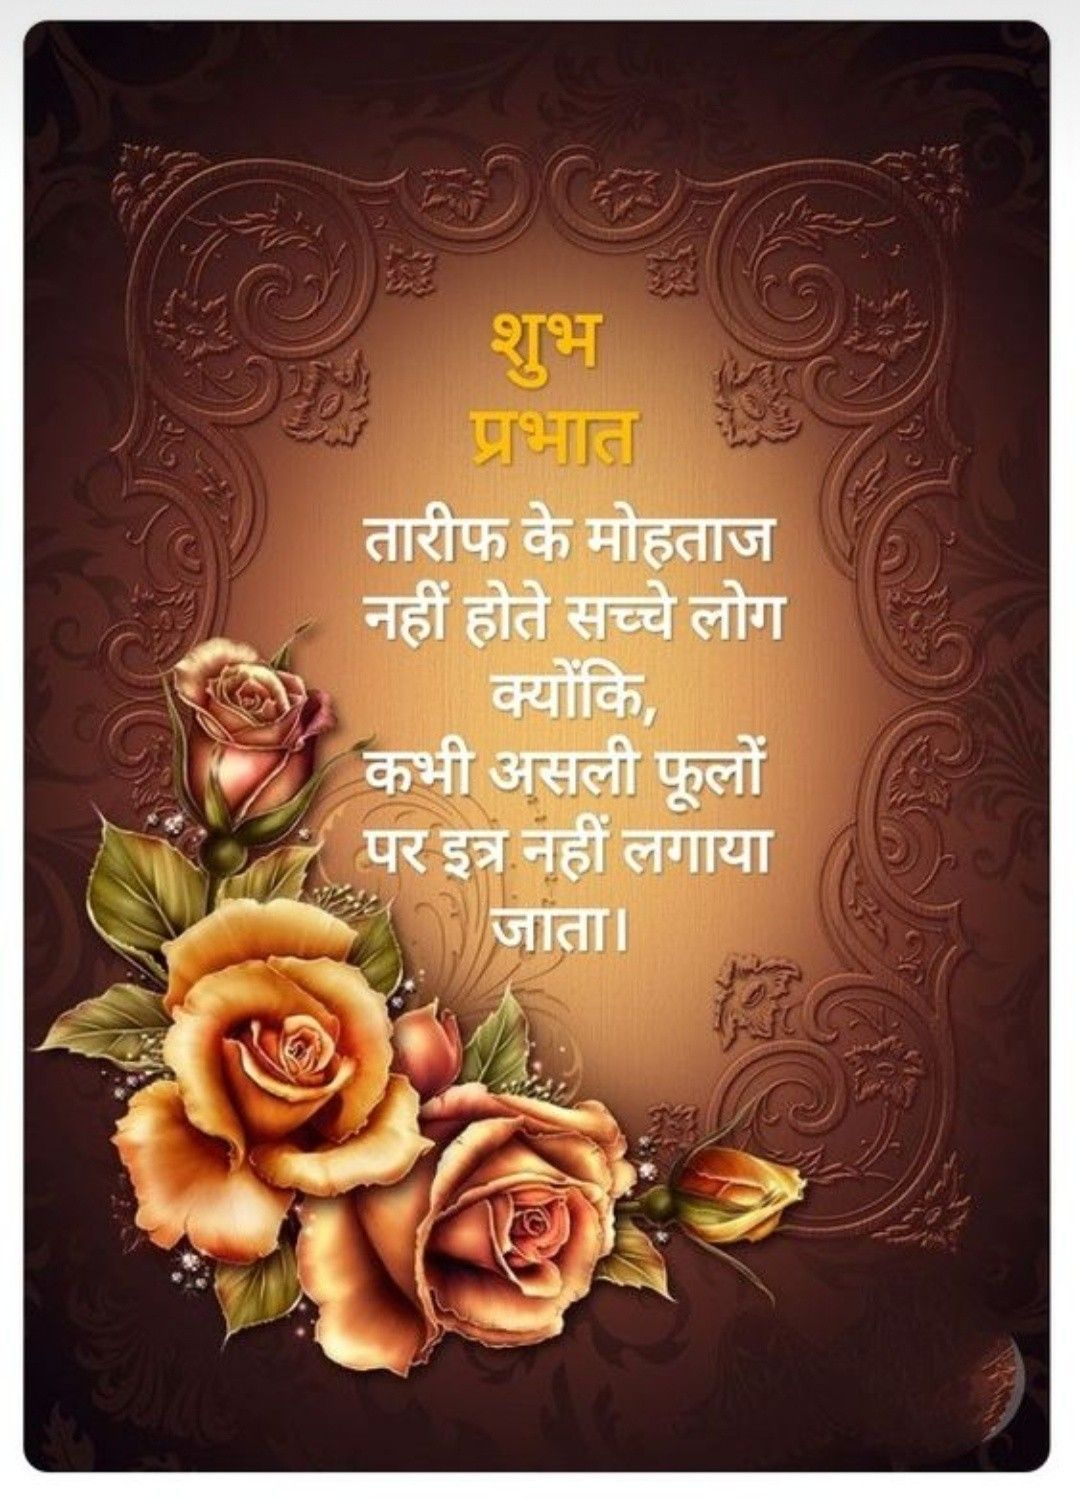 Pin by Dinesh Kumar Pandey on Su-prabhat   Morning quotes